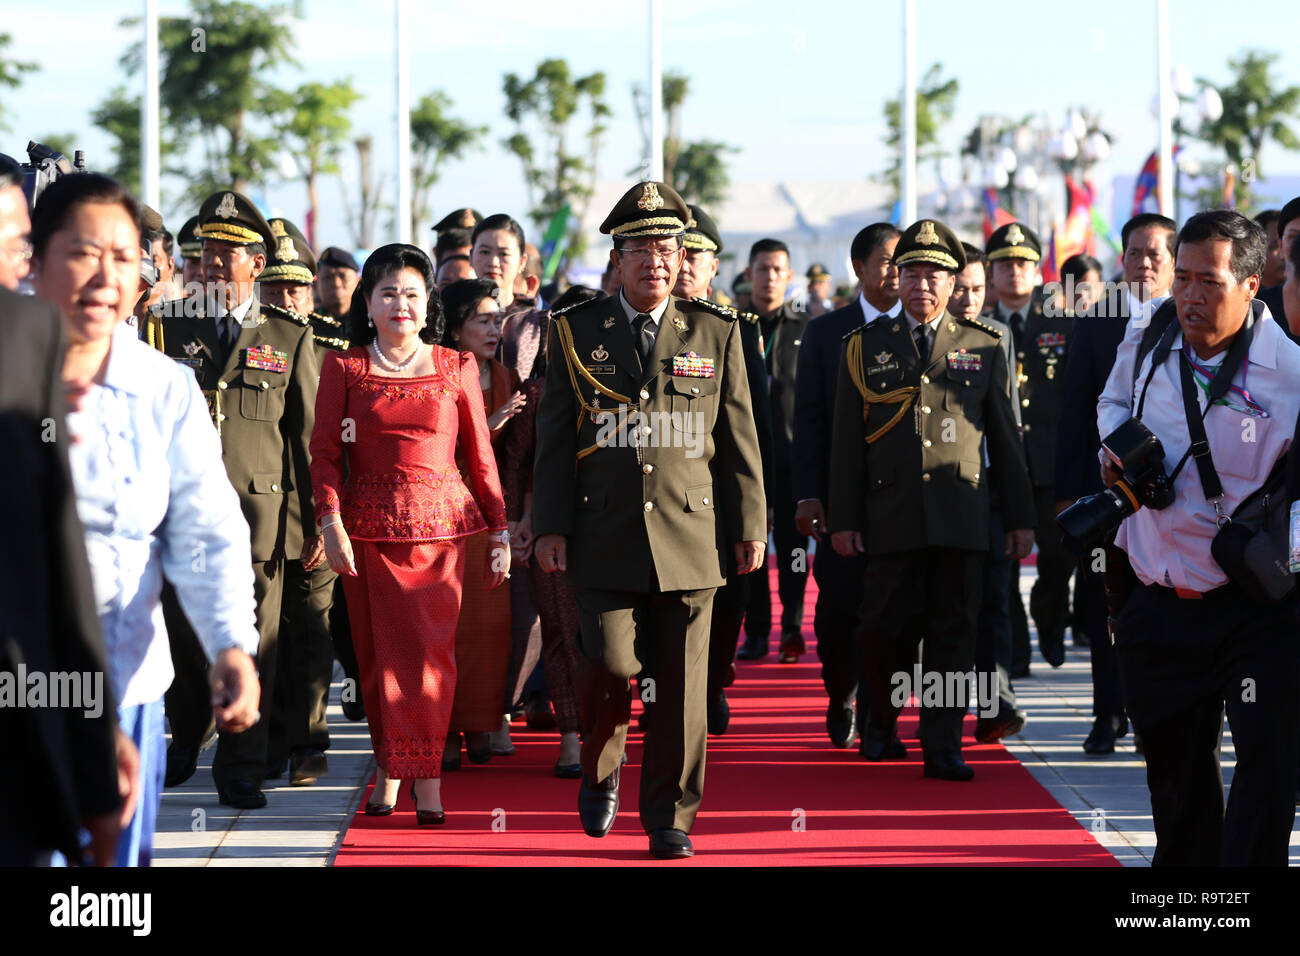 Phnom Penh, Cambodia. 29th Dec, 2018. Cambodian Prime Minister Samdech Techo Hun Sen (C, front) attends an event marking the 20th anniversary of the end of civil war in Phnom Penh, Cambodia, on Dec. 29, 2018. Cambodia on Saturday commemorated the 20th anniversary of the end of civil war, vowing to use all necessary means to continue protecting the country's hard-earned peace. Credit: Sovannara/Xinhua/Alamy Live News - Stock Image